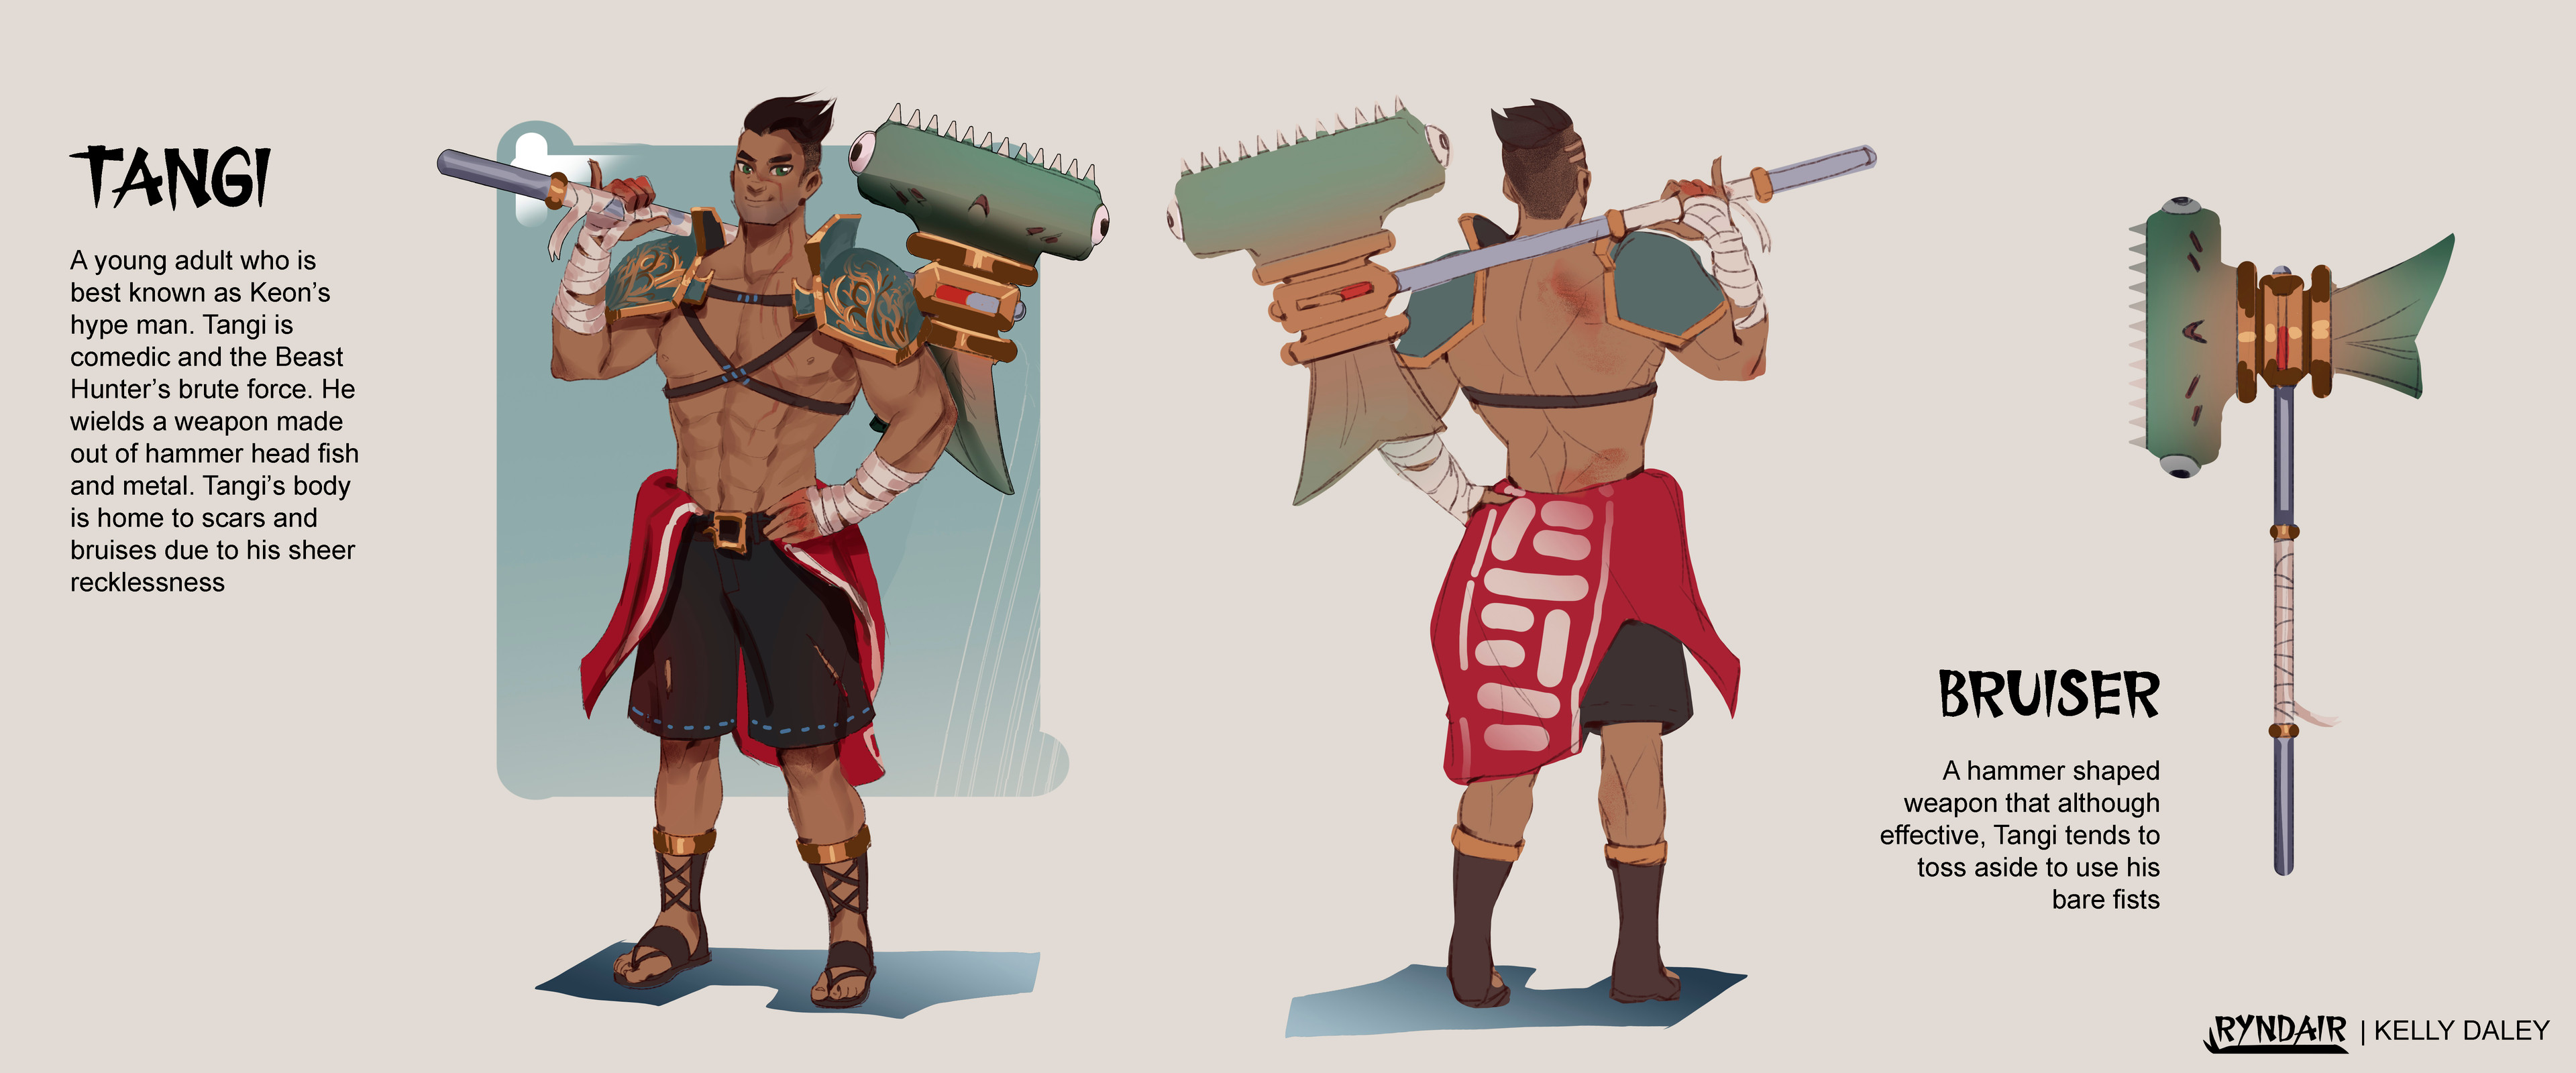 Tangi Character Sheet. He's the brute force of the trio and also the comic relief. His design is meant to be a tad mismatched and goofy but still strong looking. He has the most skin showing because he thinks his abs and scars are cool.